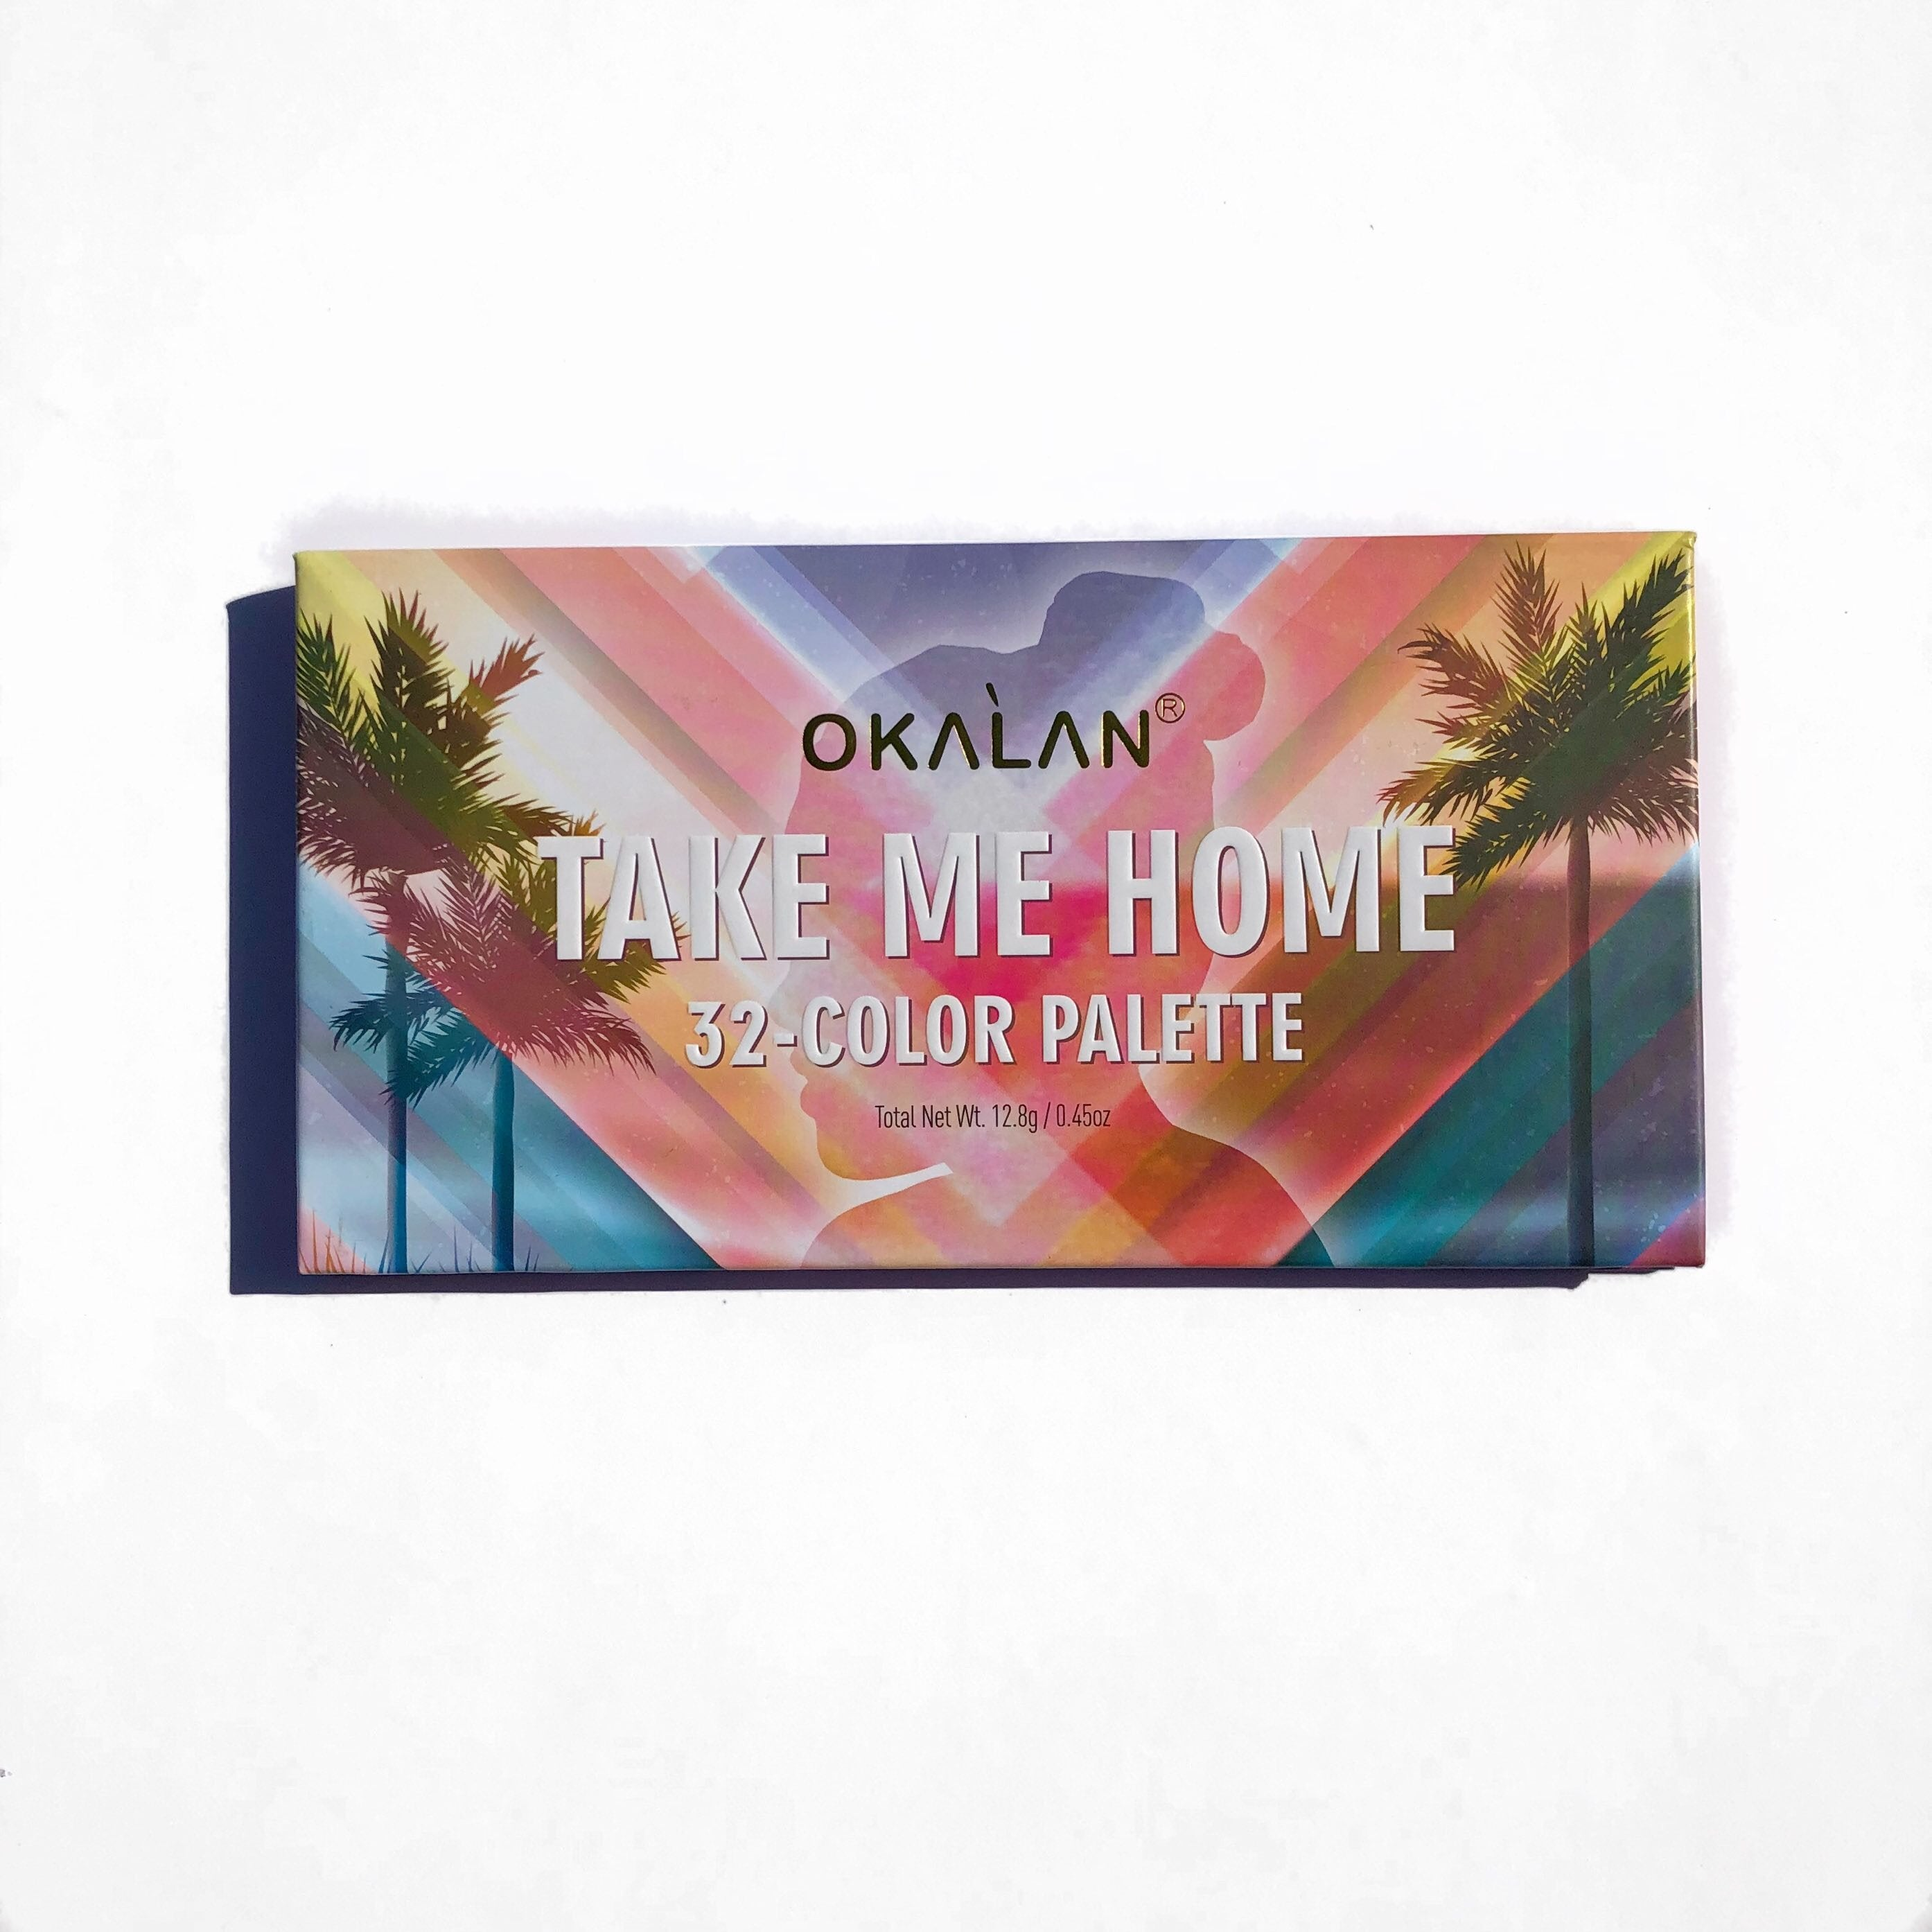 Okalan Take Me Home Eyeshadow Palette